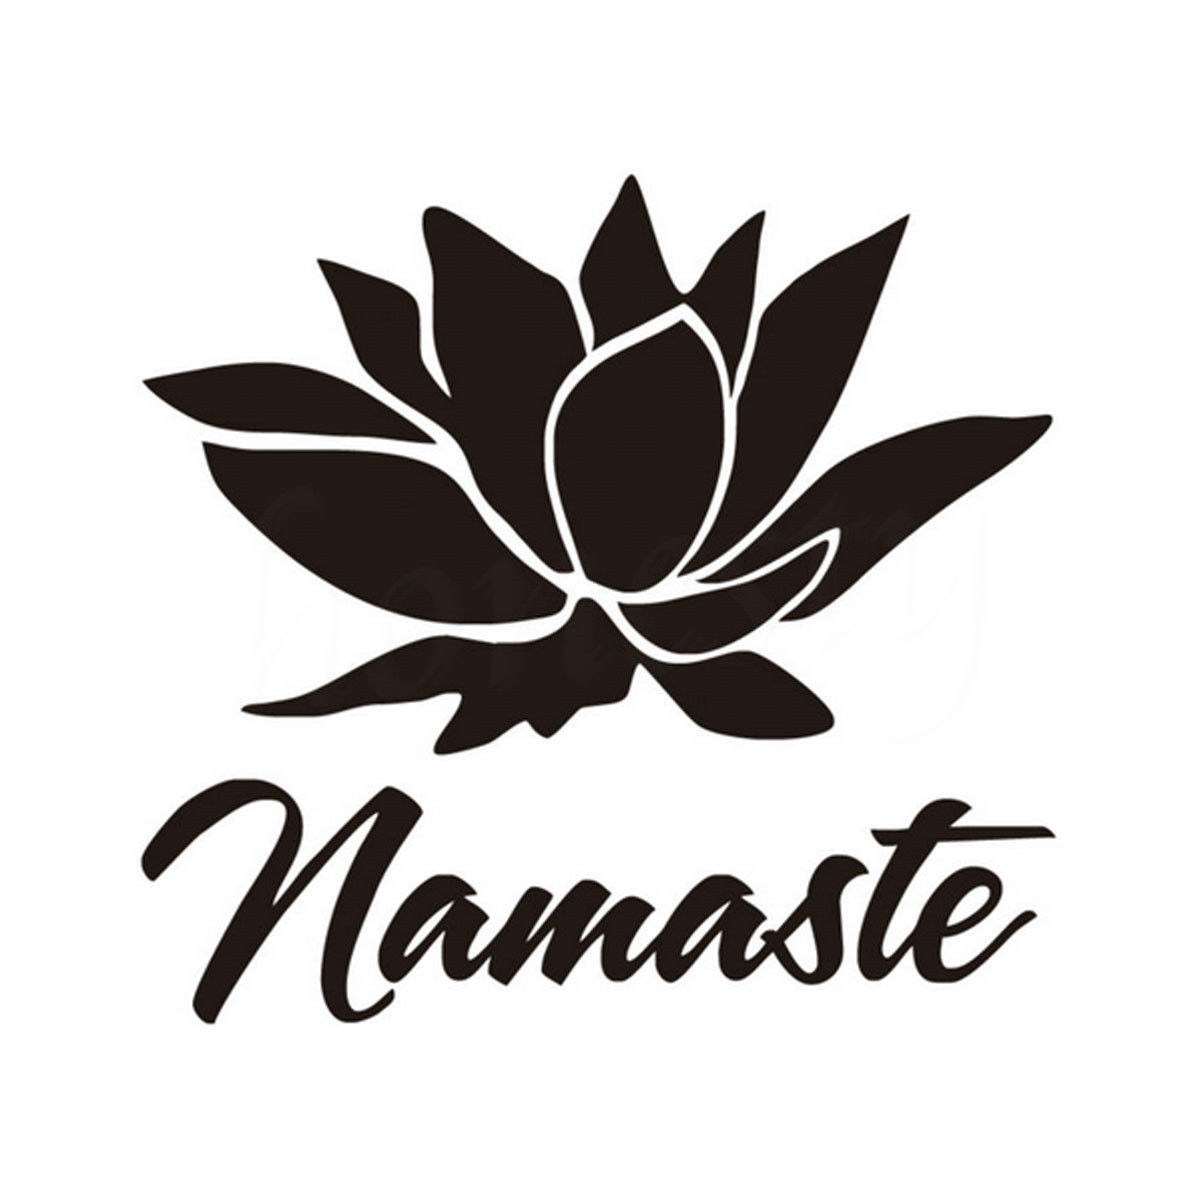 Namaste Yoga Lotus Flower For Car Window Truck Laptop Wall Home